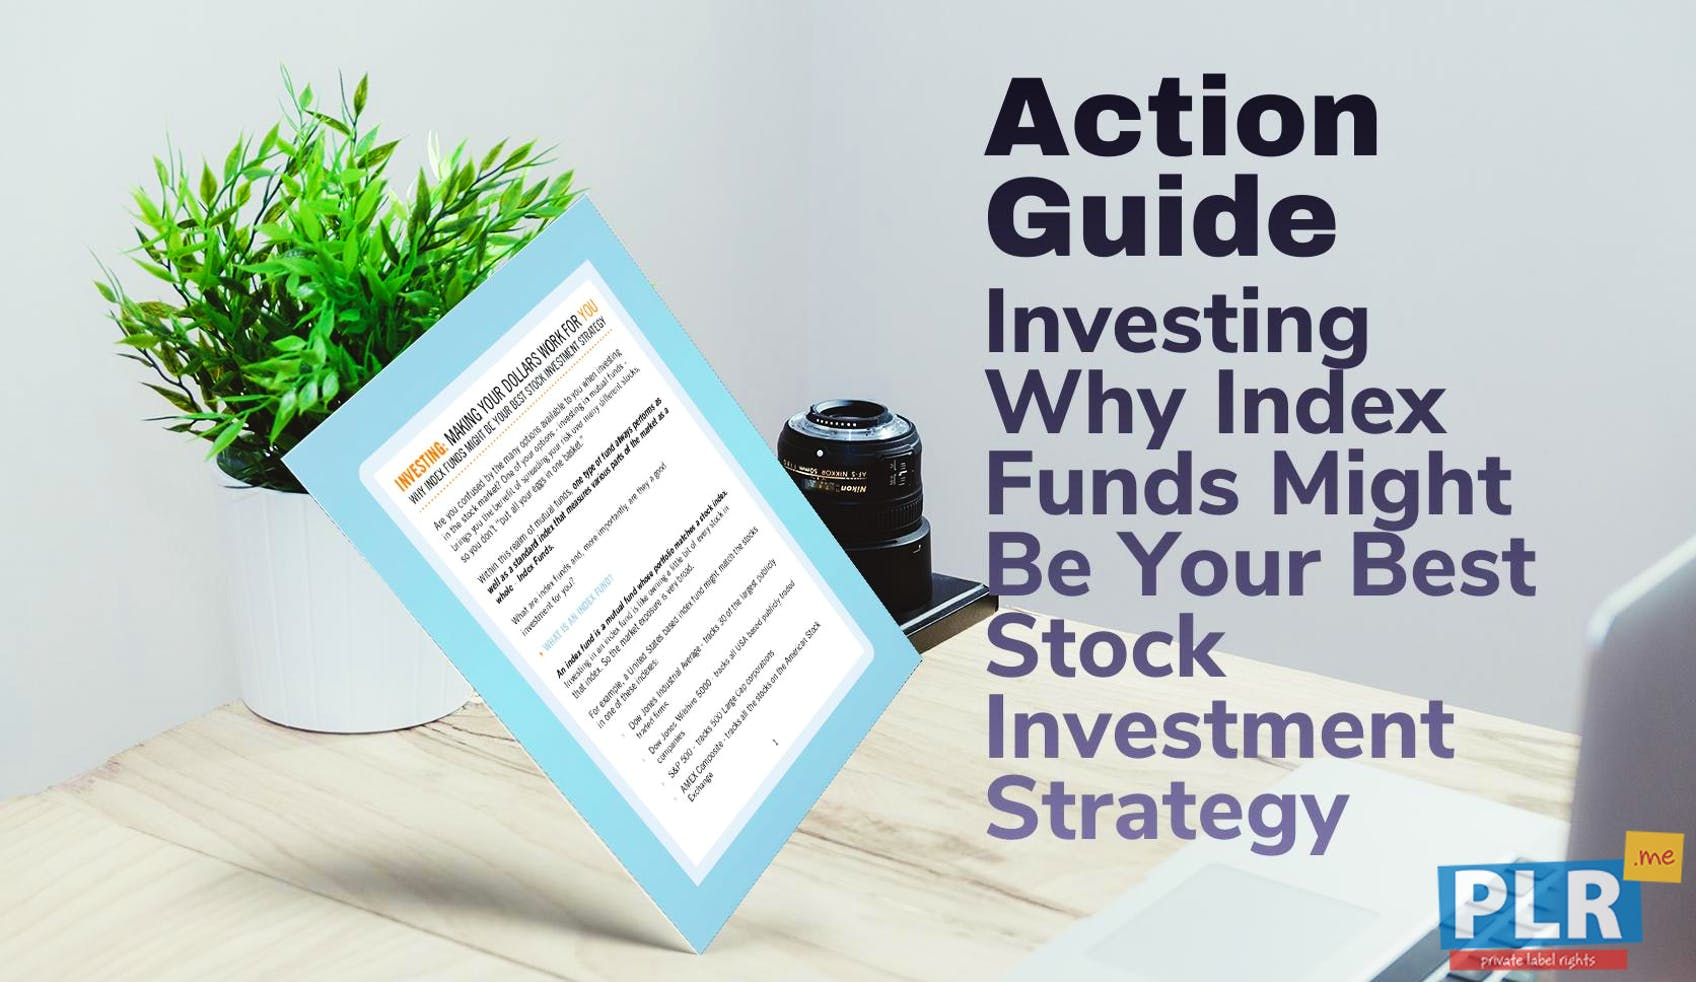 Investing Why Index Funds Might Be Your Best Stock Investment Strategy